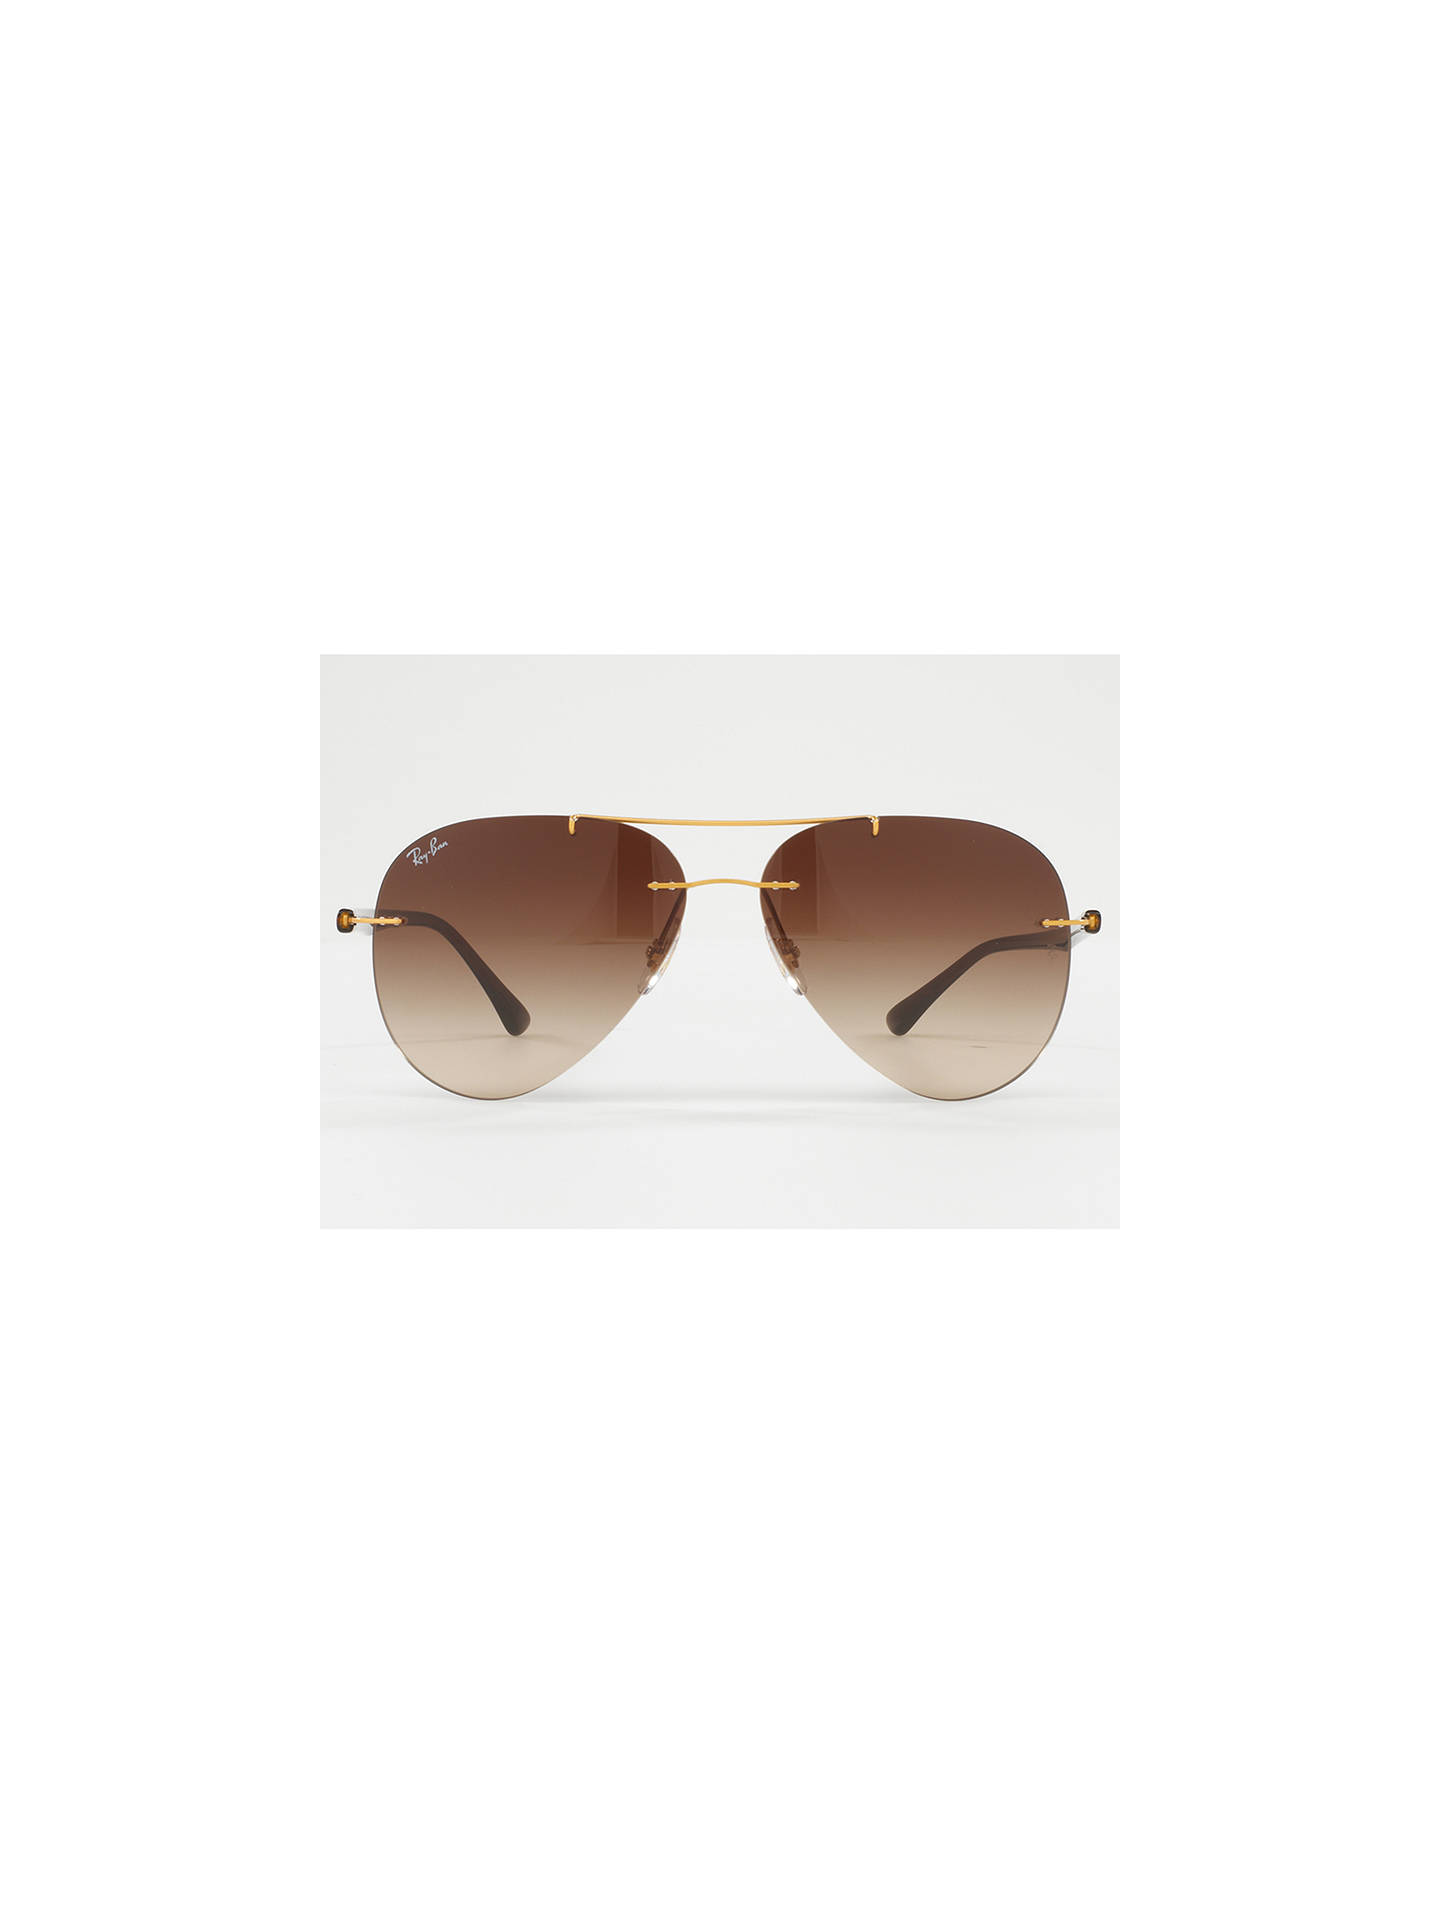 BuyRay-Ban RB8058 Frameless Aviator Sunglasses, Brushed Gold/Brown Gradient Online at johnlewis.com